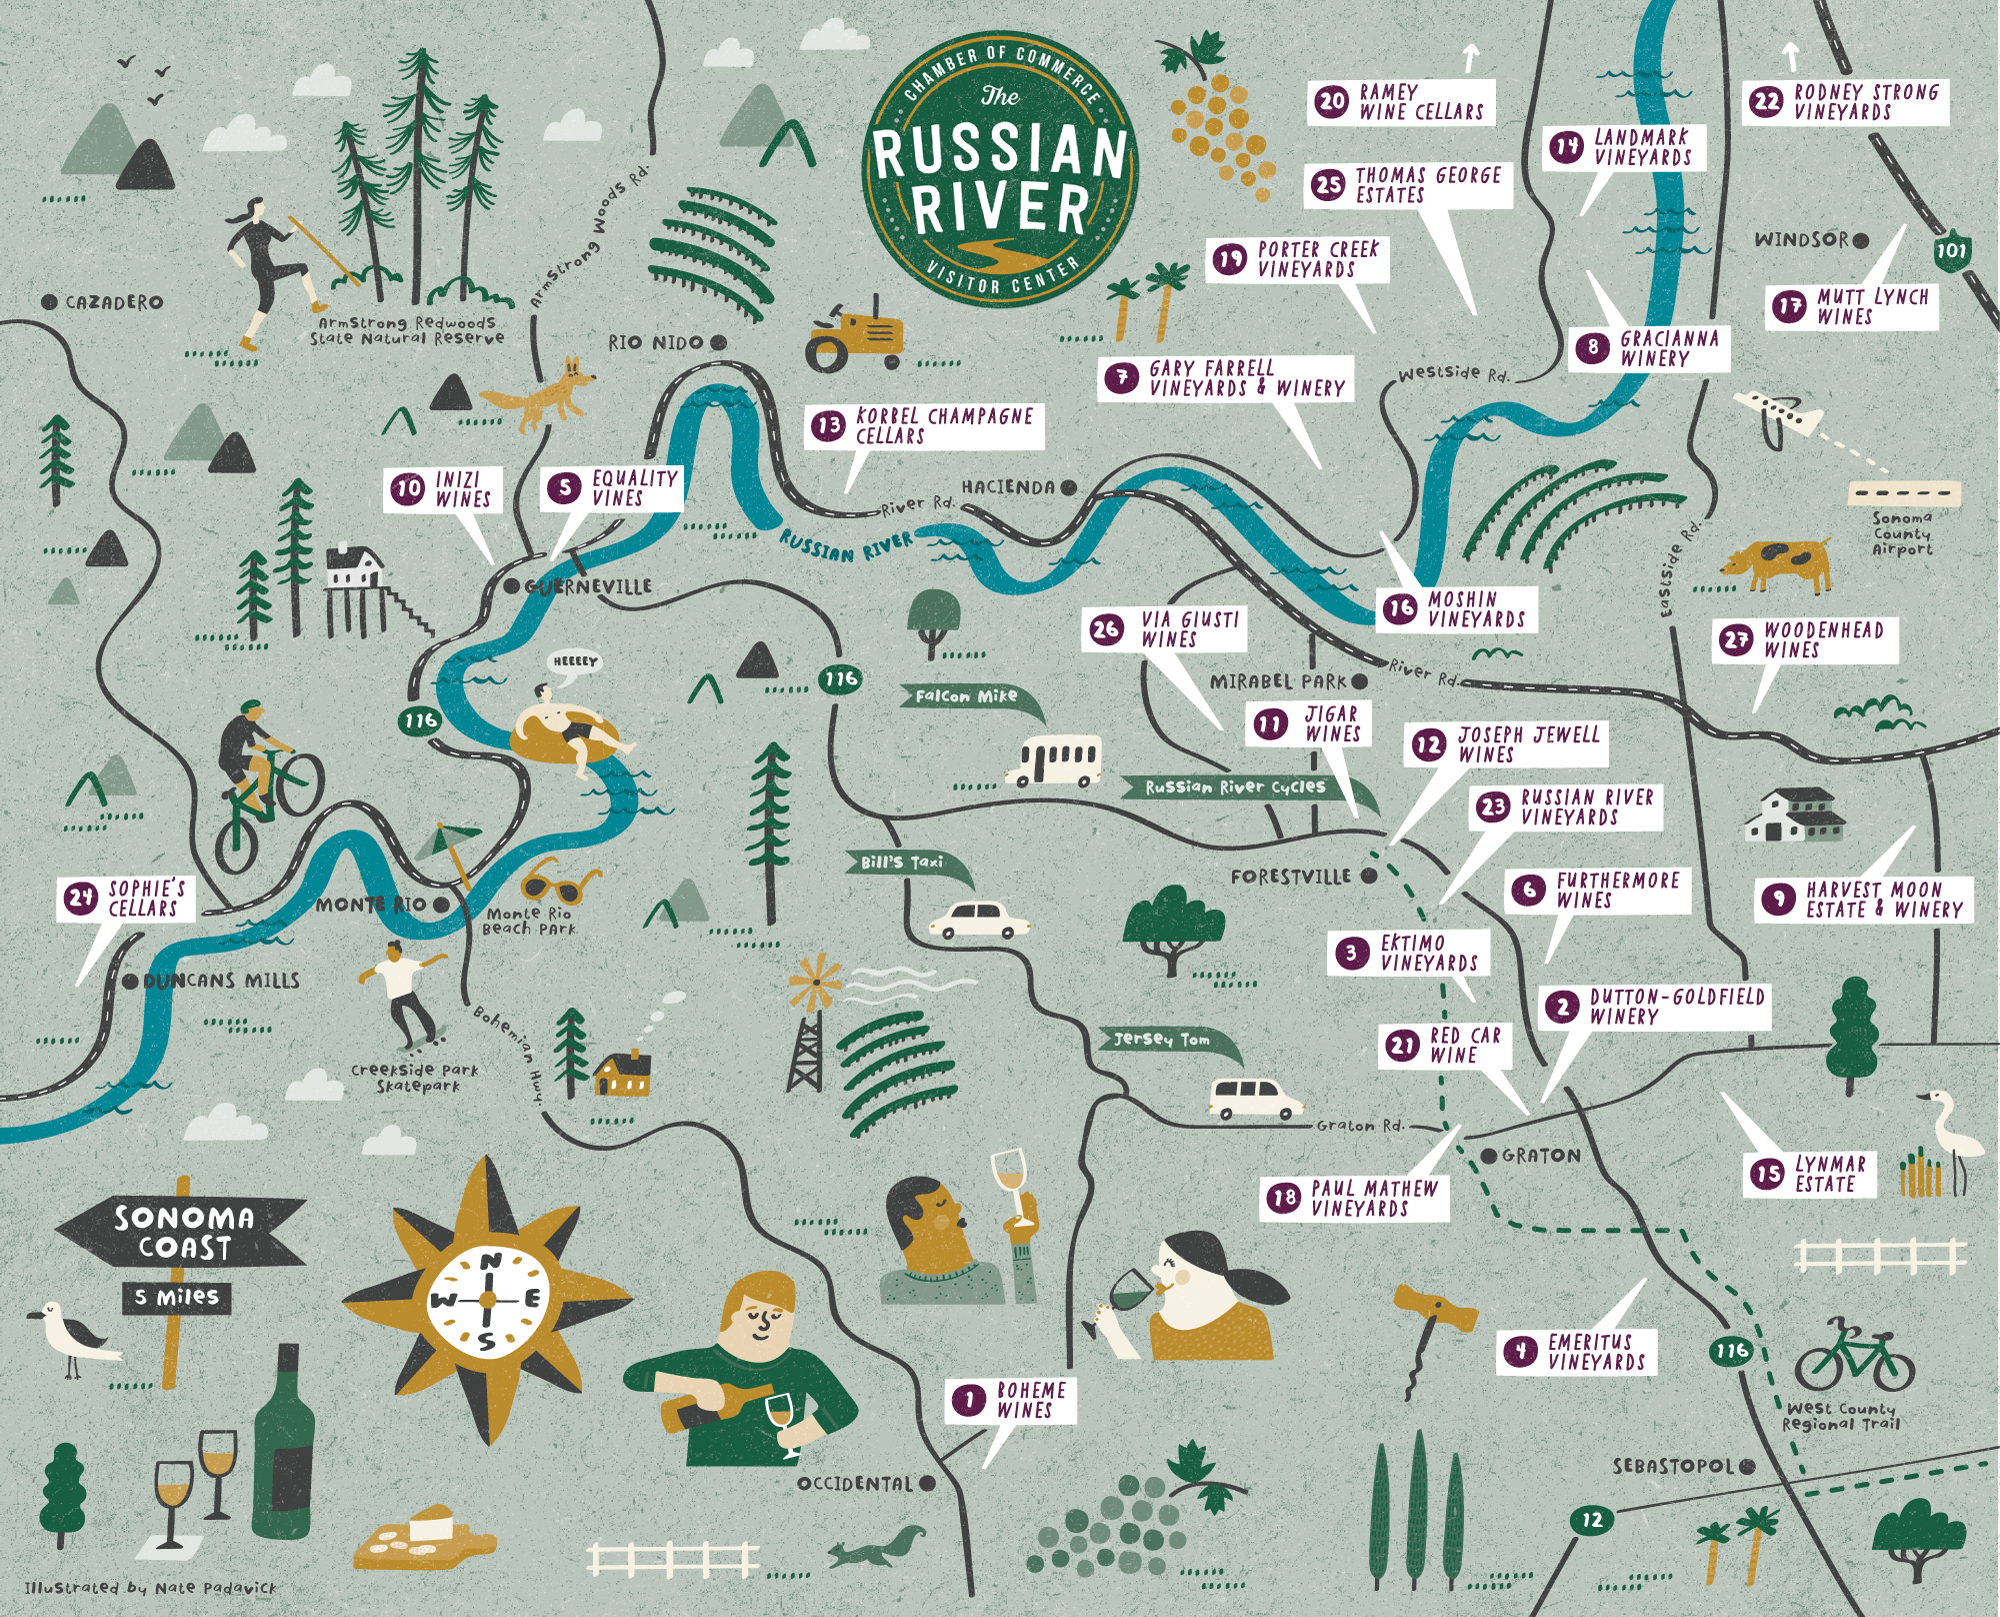 Russian-River-California-Wine-Illustrated-Map-by-Nate-Padavick-promo.png